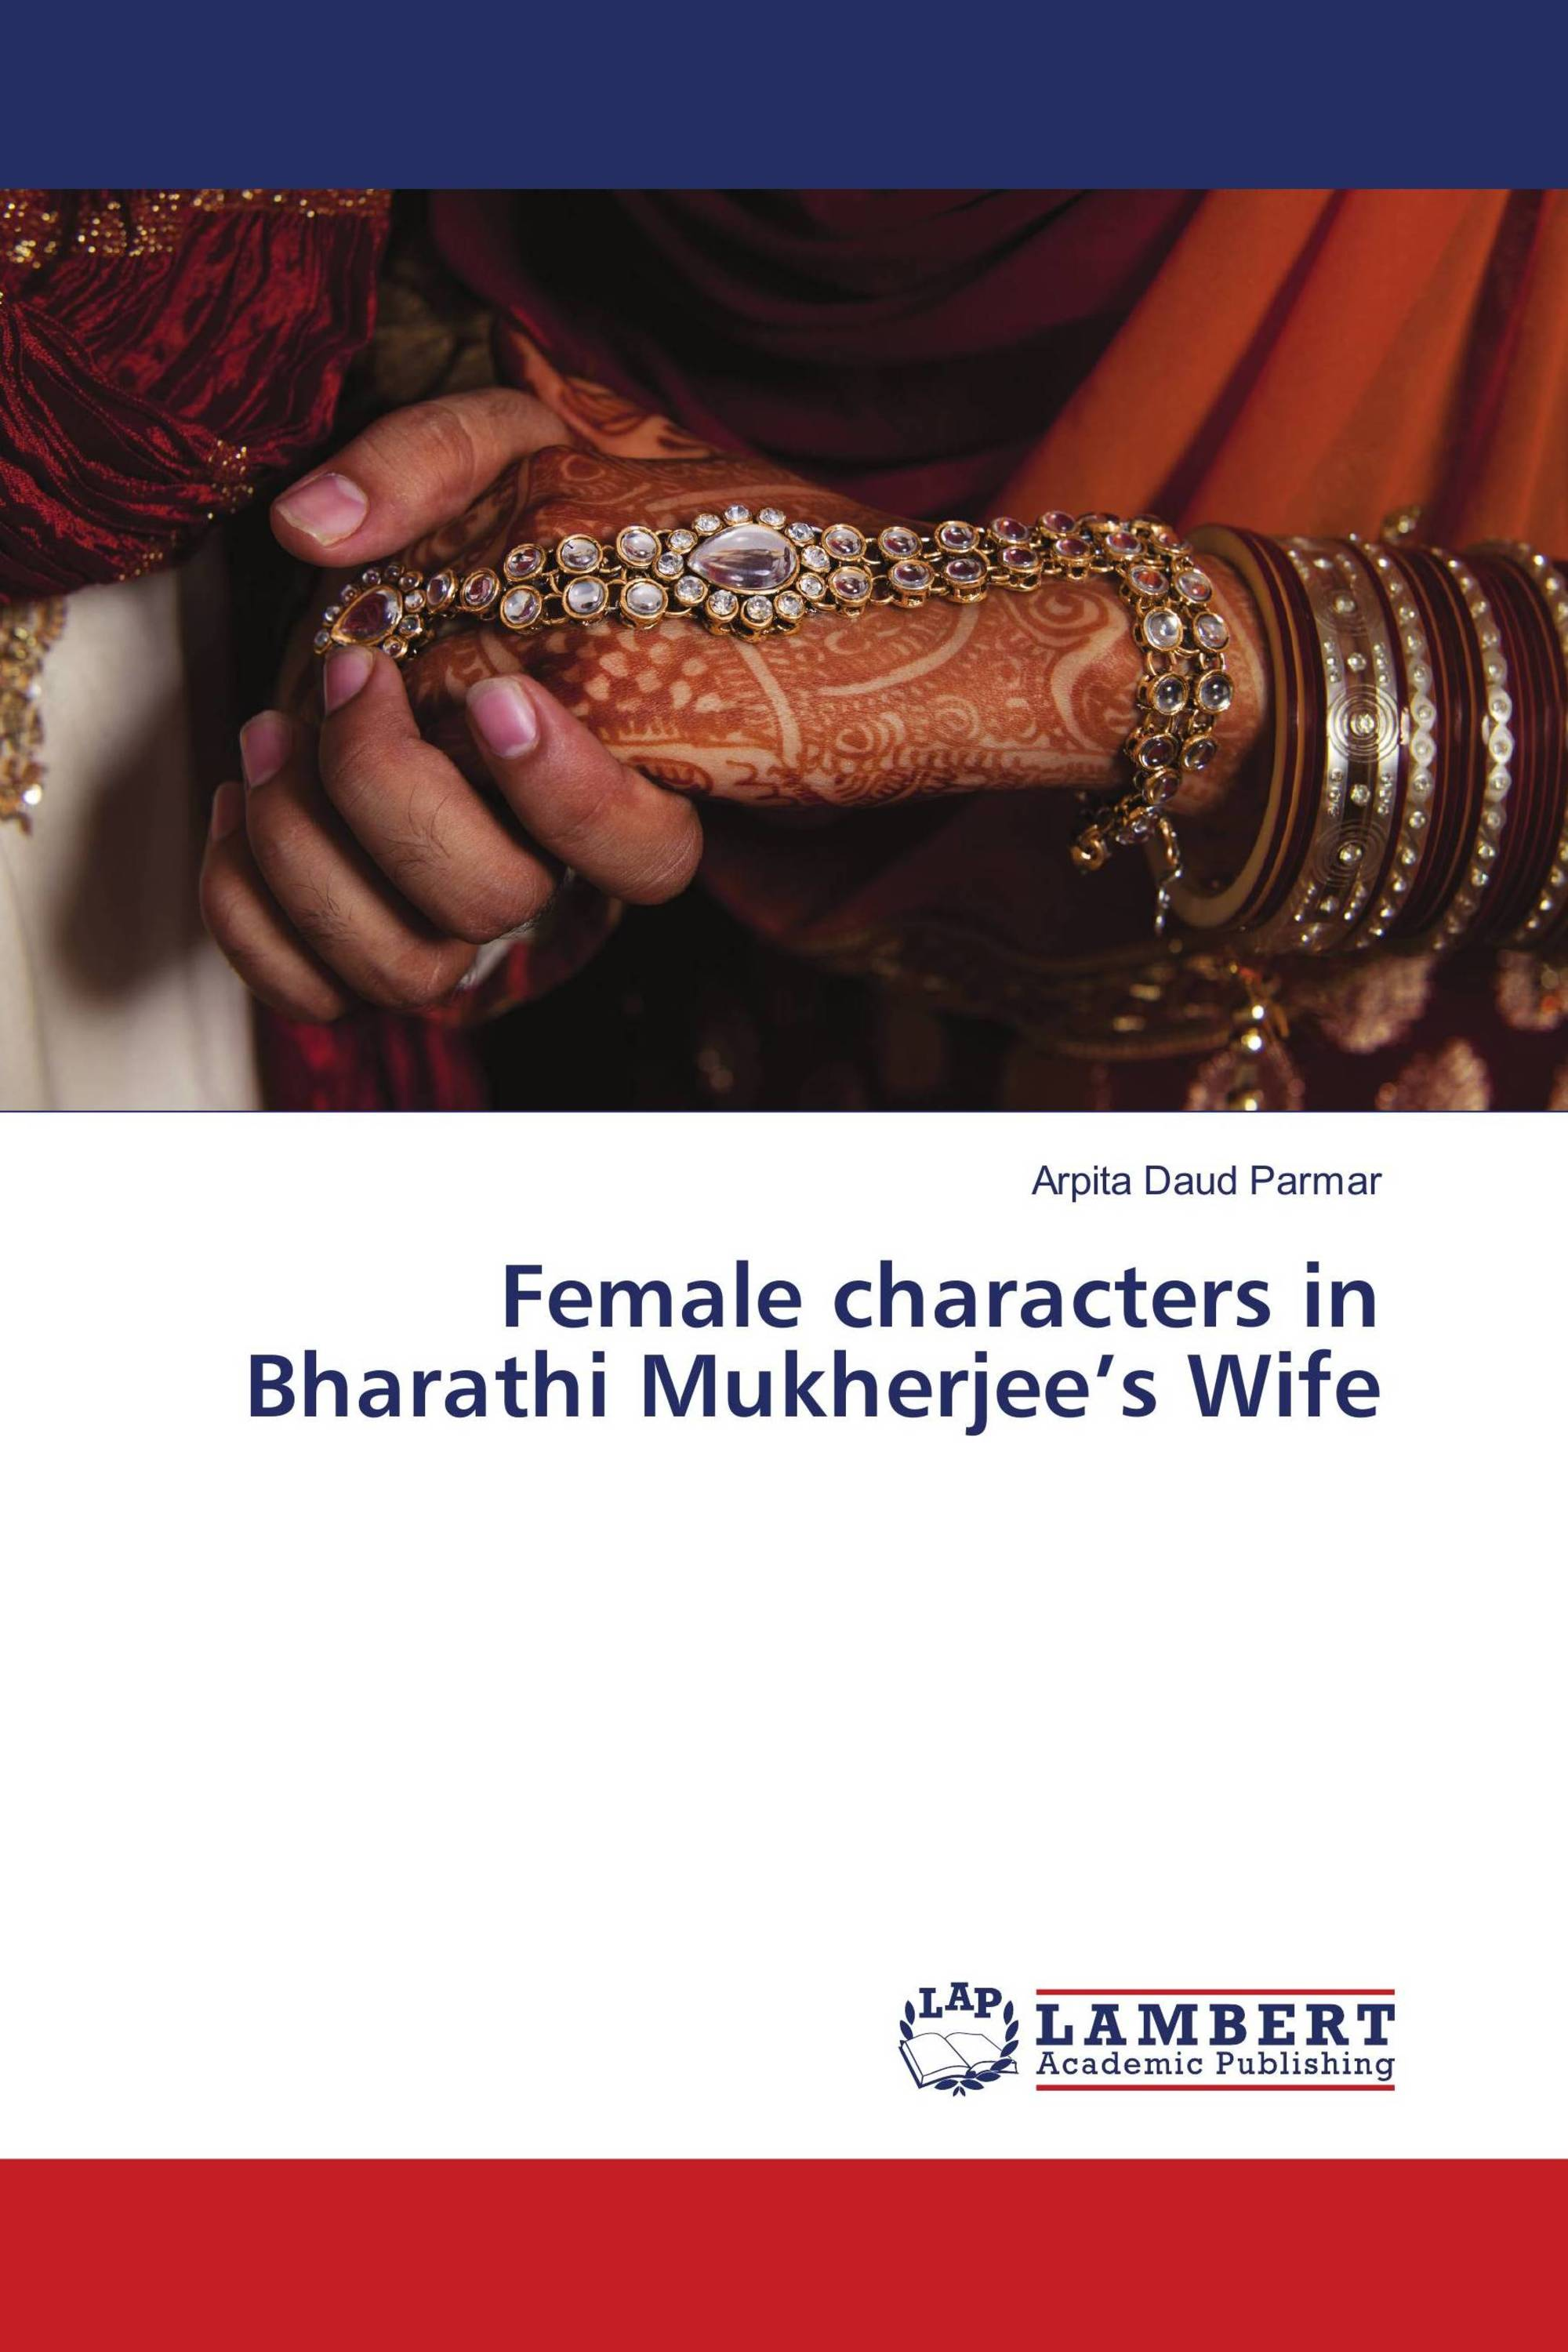 thesis on bharati mukherjees wife